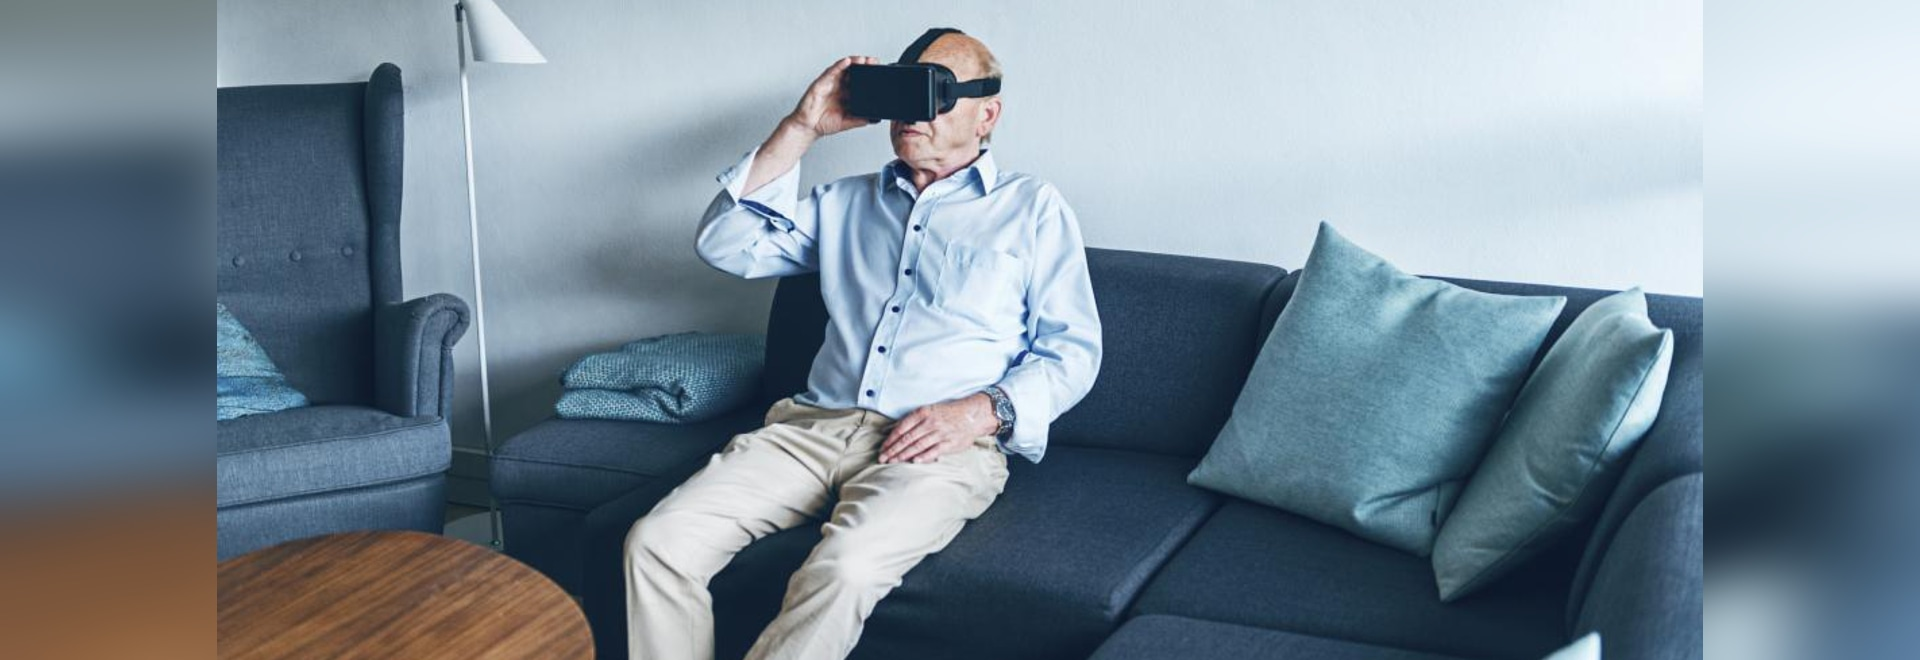 VR headsets may soon serve as a better alternative to standard testing for Alzheimer's.